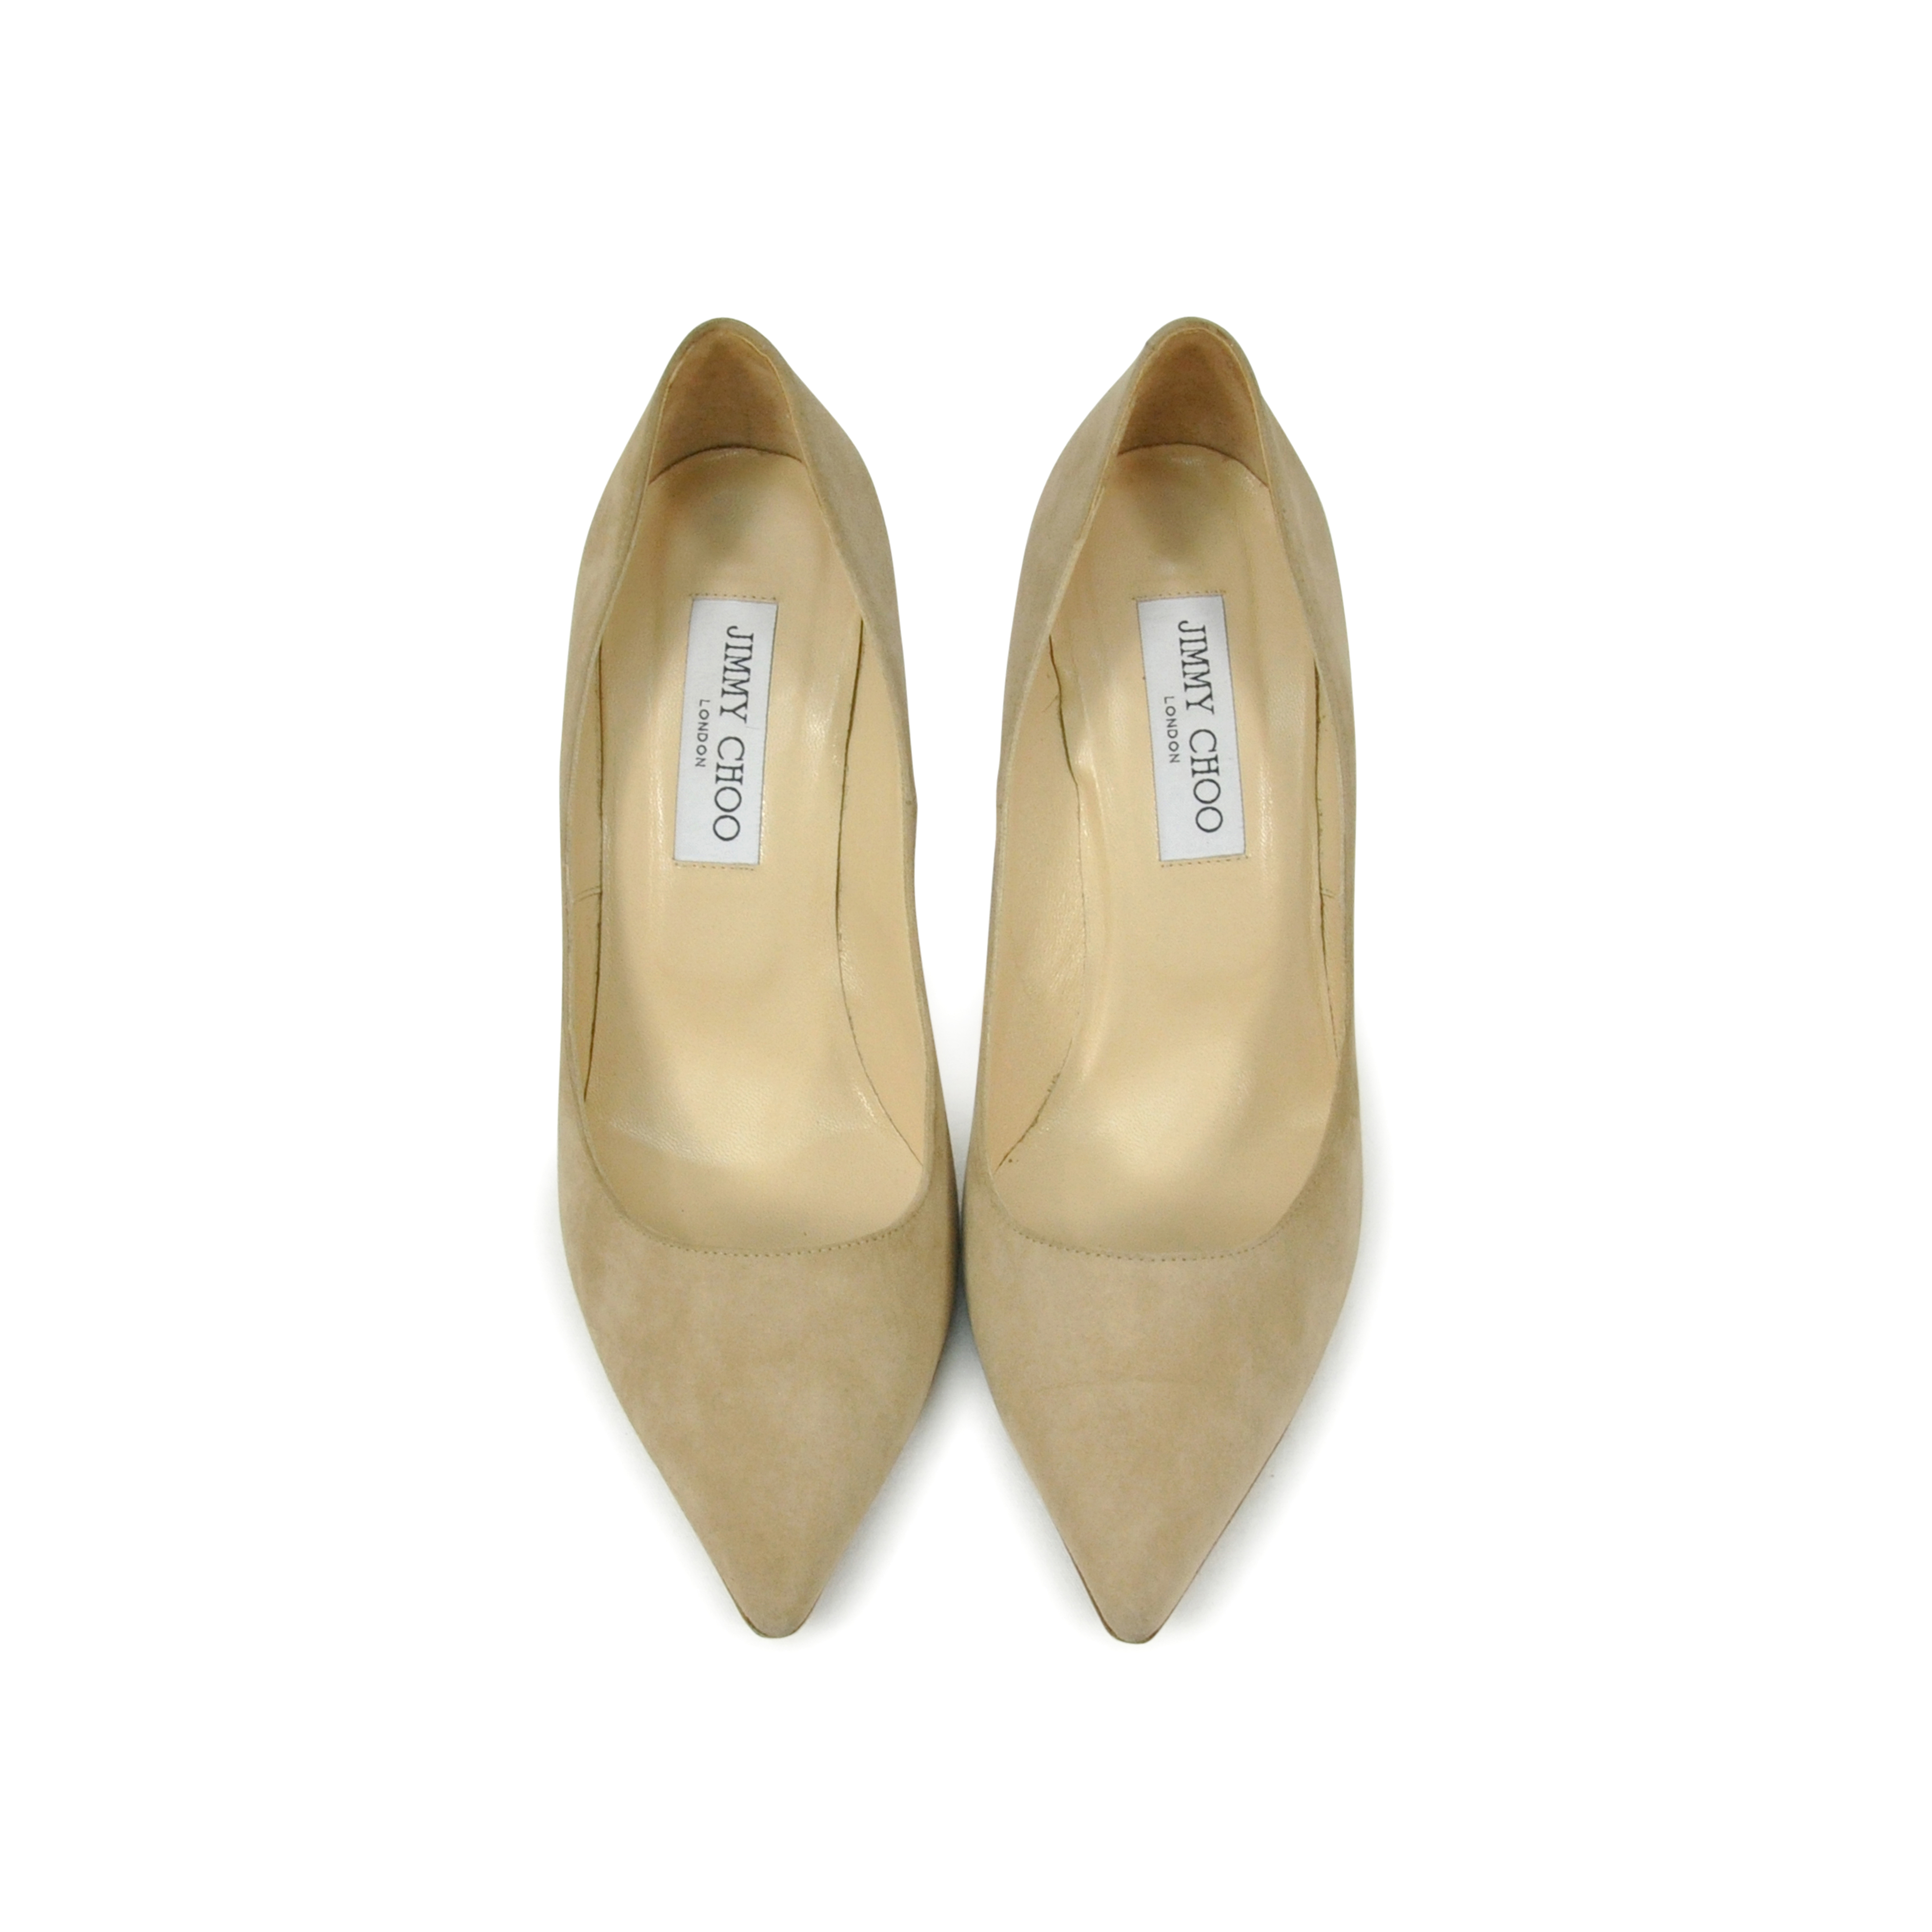 feeaeab8ac Authentic Second Hand Jimmy Choo Romy Suede Pointed Pumps (PSS-286-00013) -  THE FIFTH COLLECTION